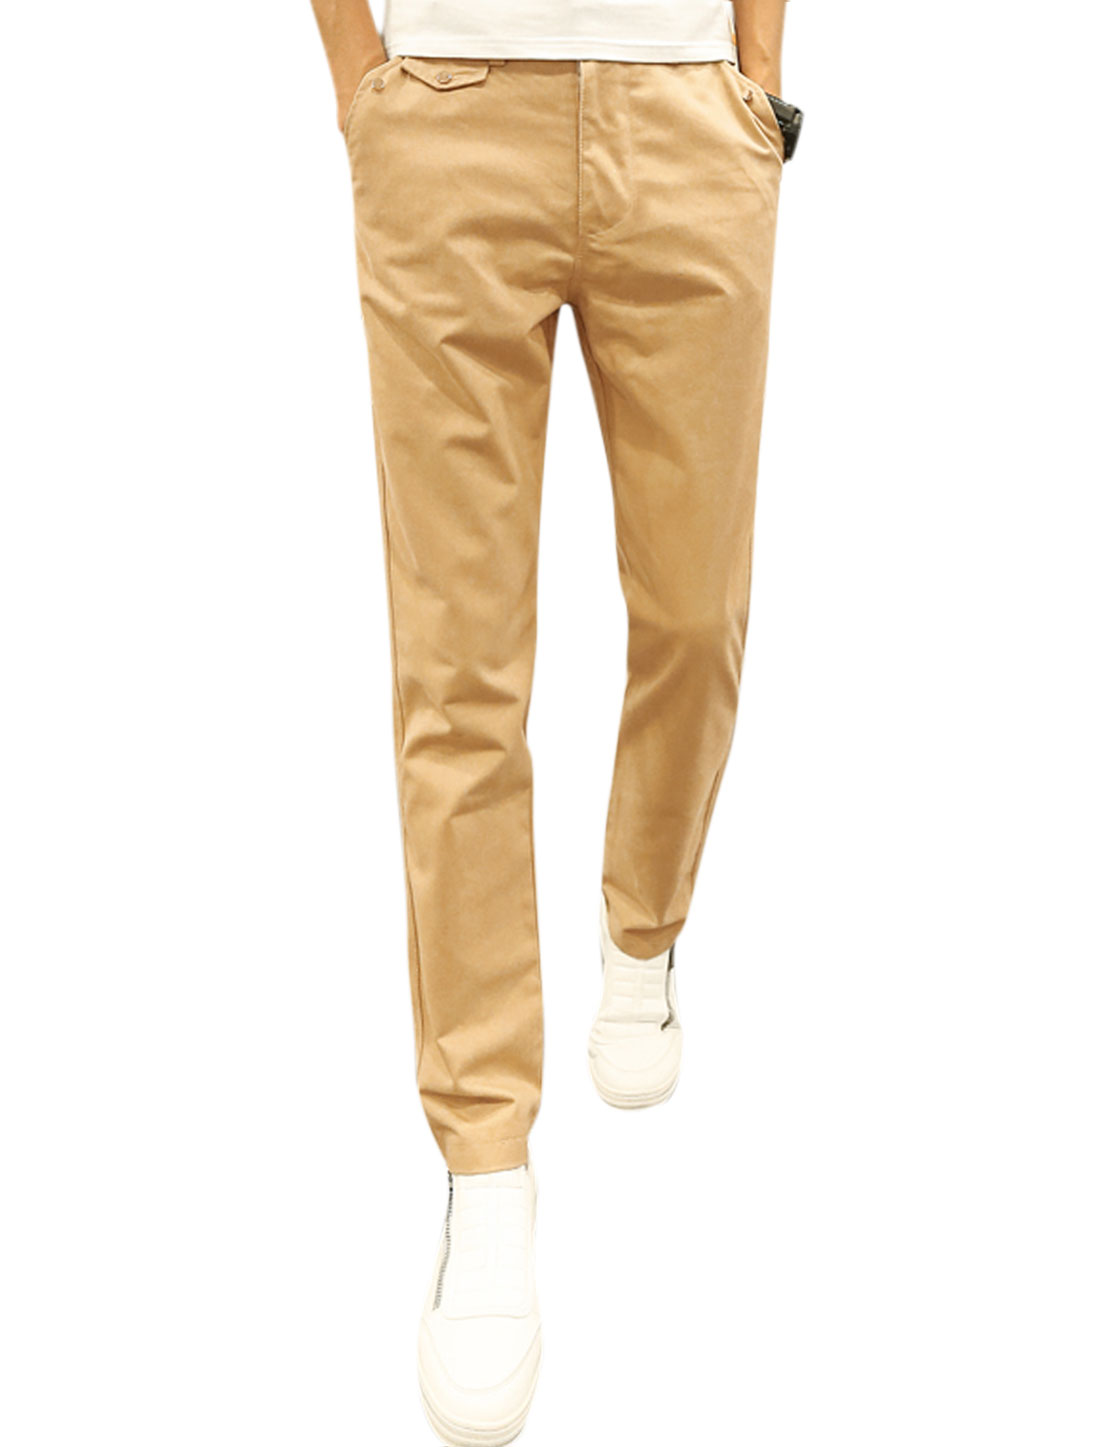 Men Button Closed Zip Fly Natural Waist Tapered Casual Pants Beige W30